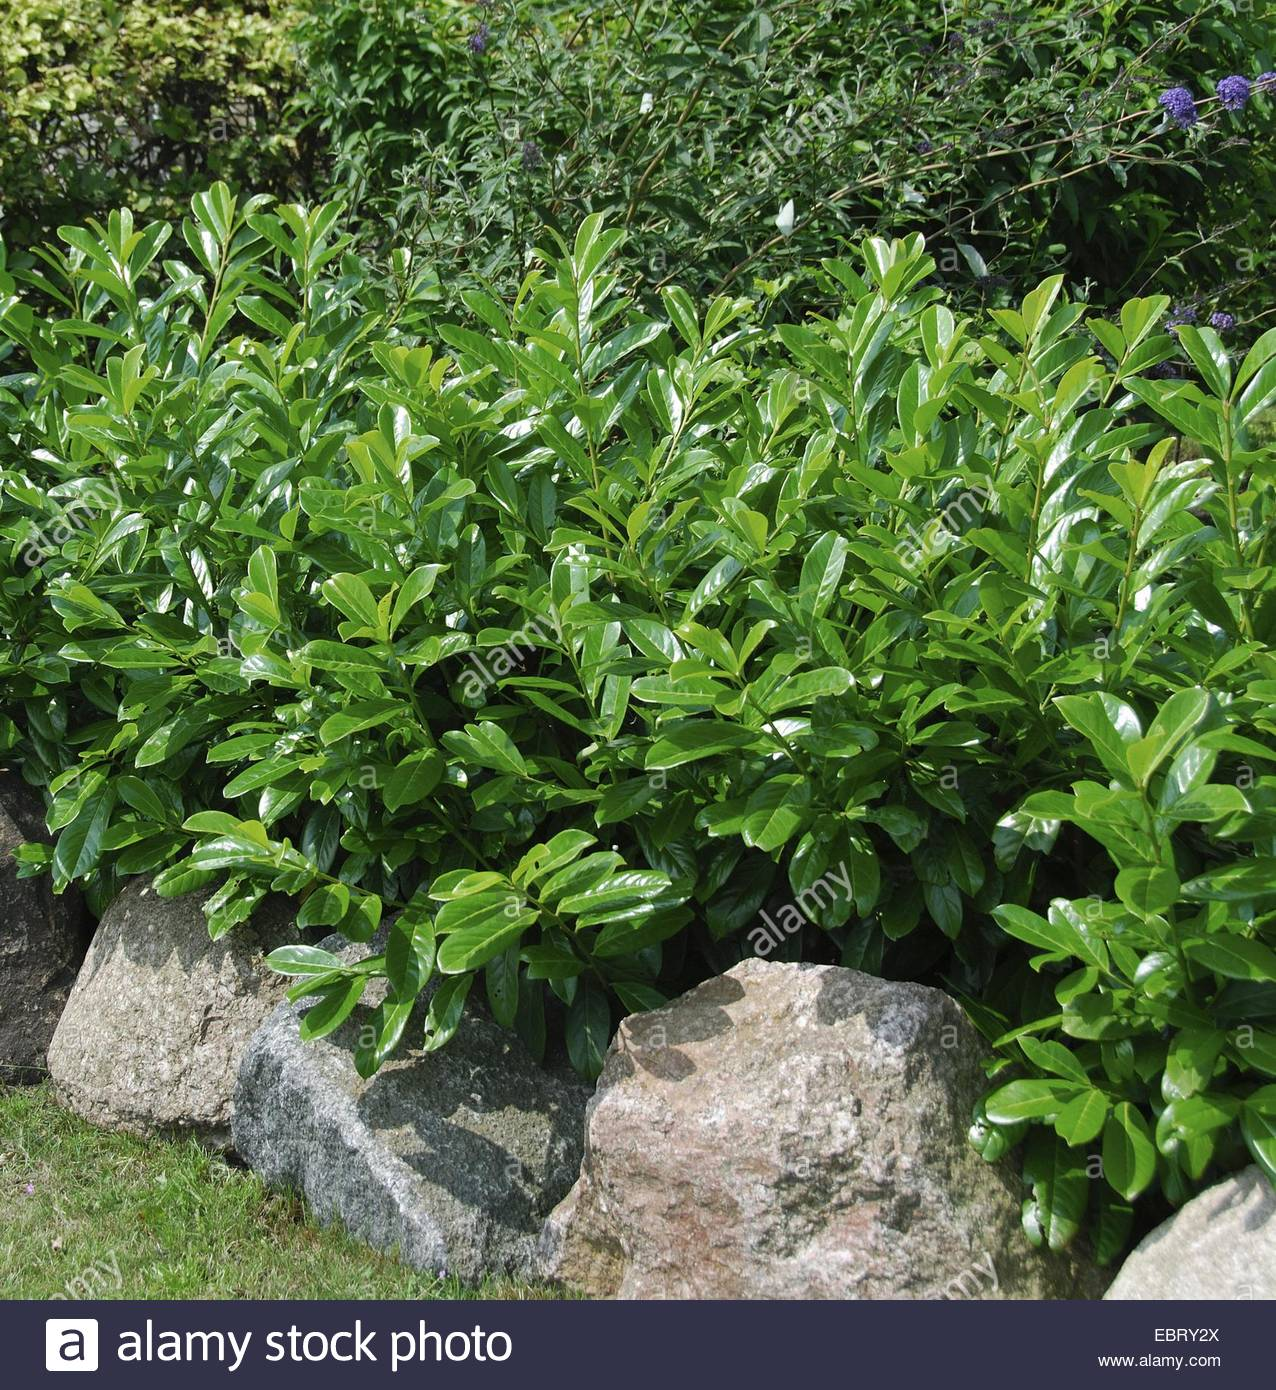 Pruning Cherry Laurel | Cherry Laurel | Cherry Laurel Tree